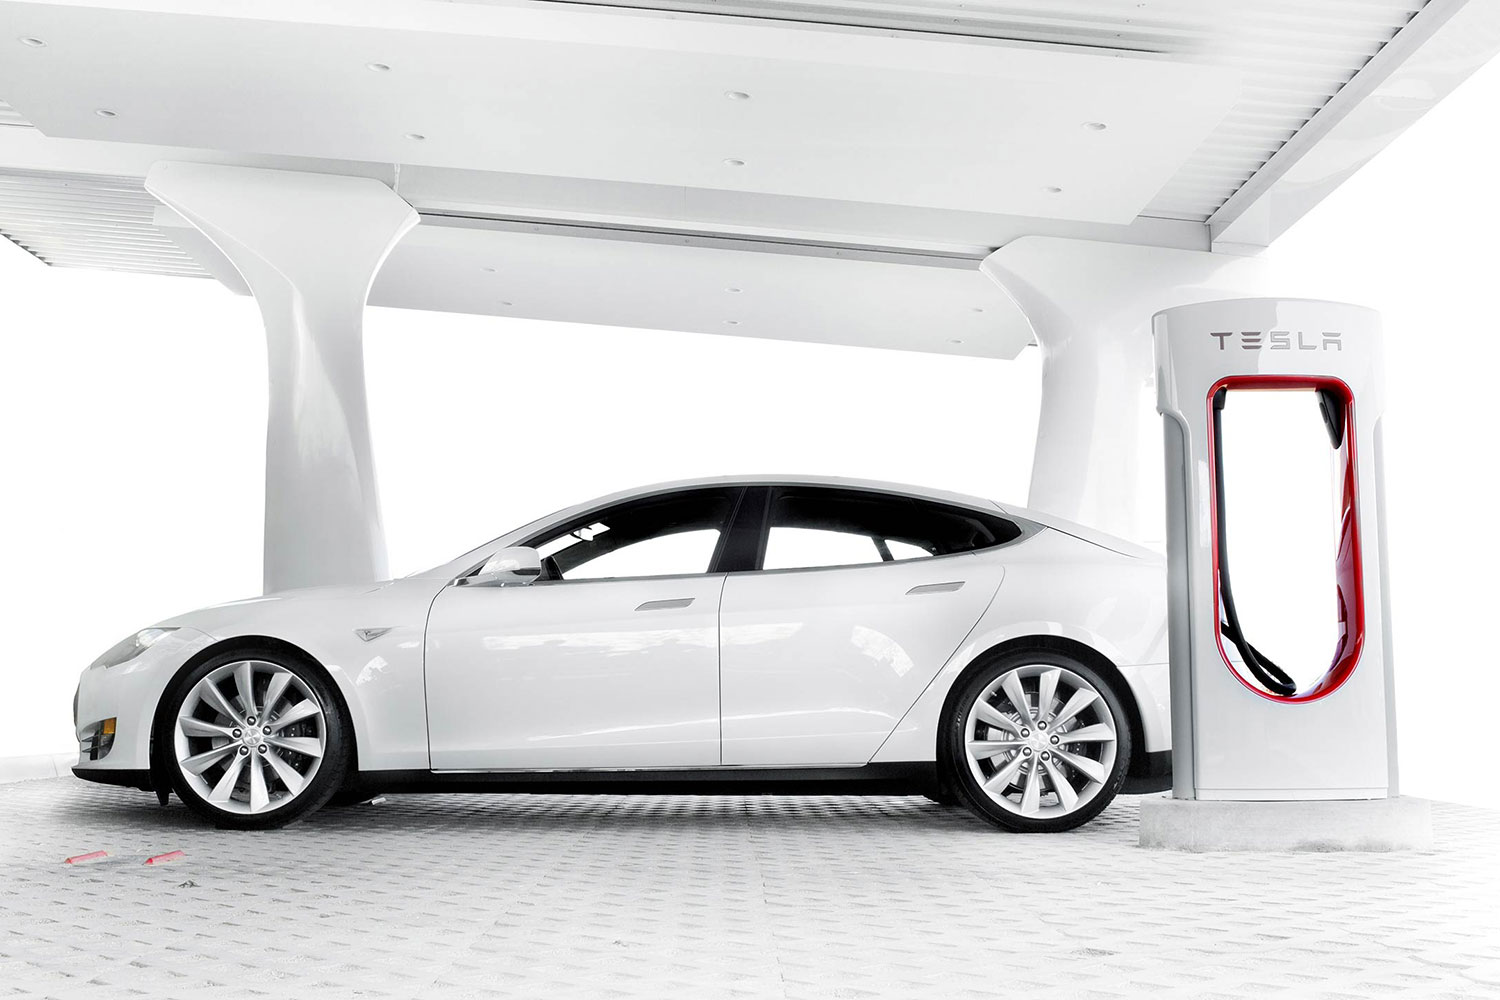 Can Other Electric Cars Use Tesla Charging Stations